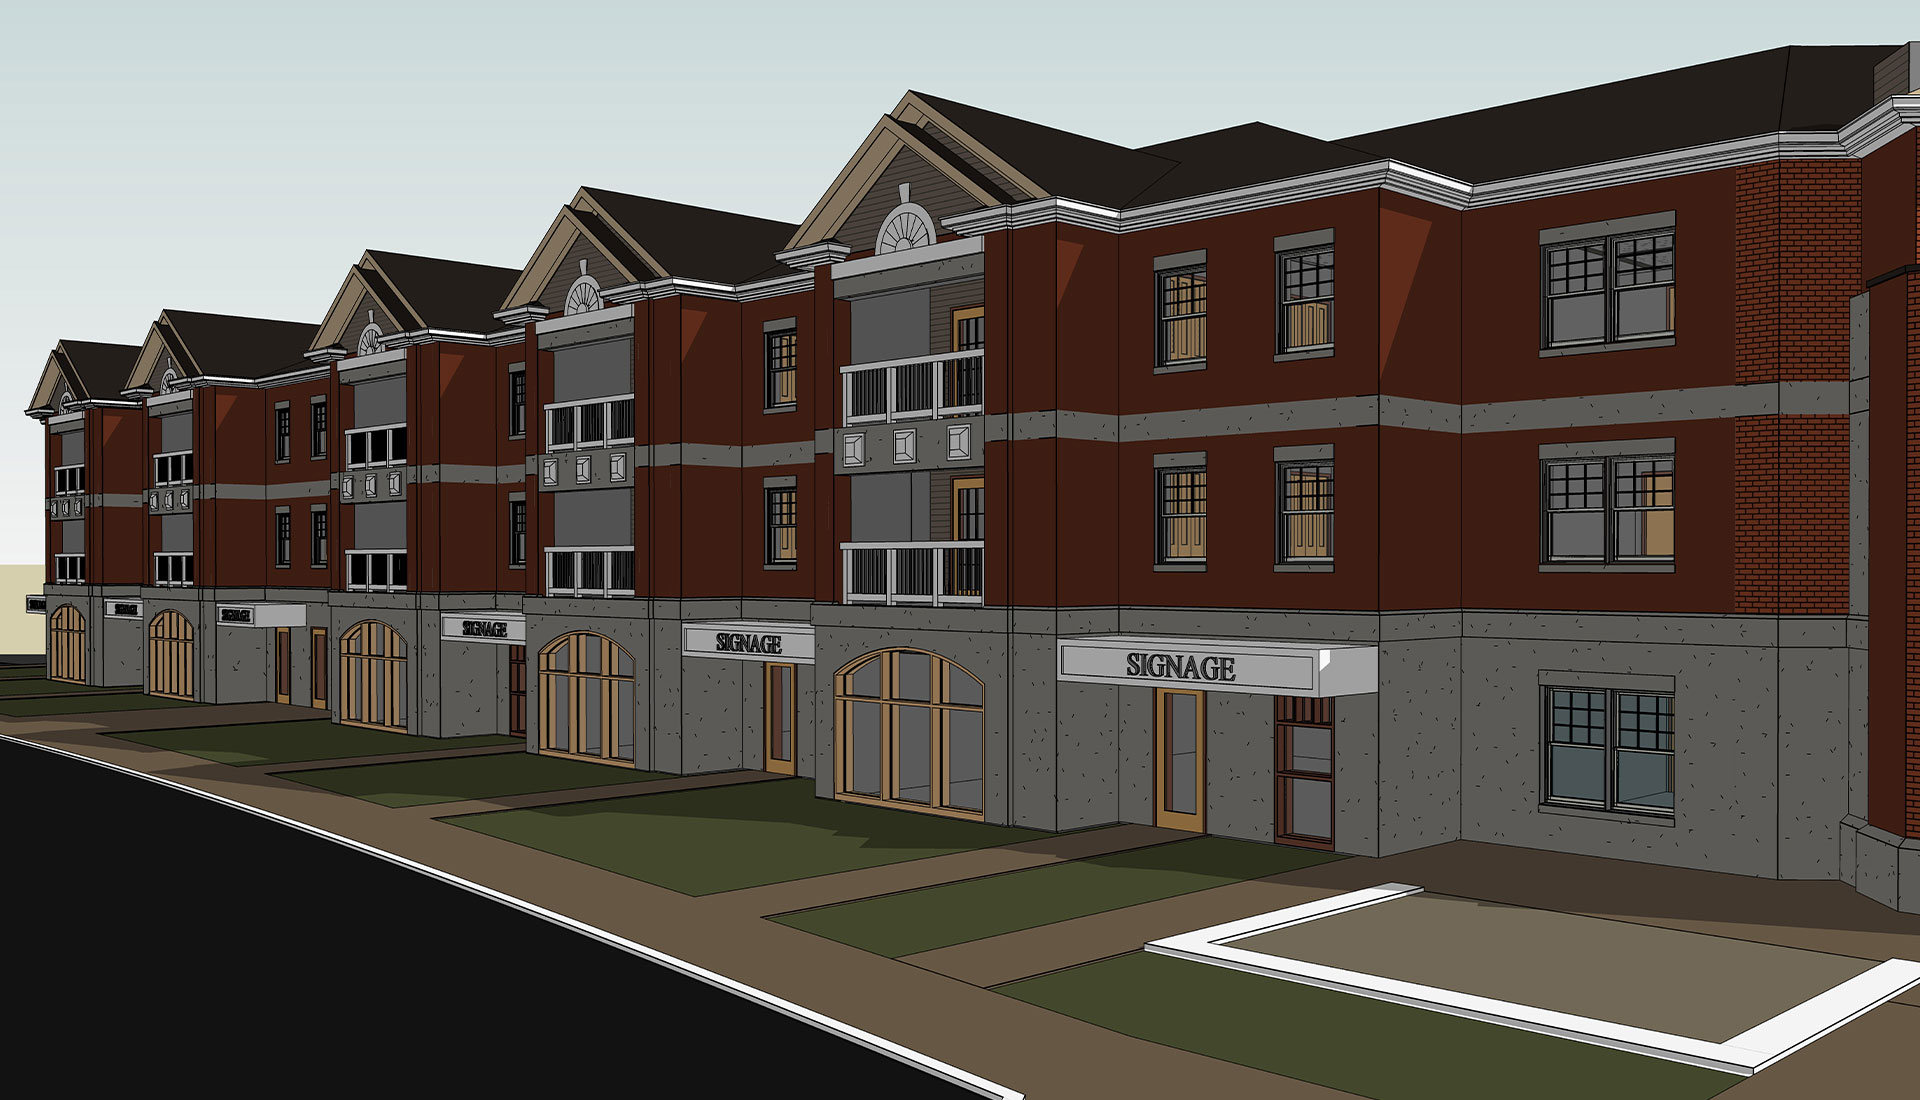 Architectural-BIM-Model_Residential-Project_Revit-Modeling-by-United-BIM